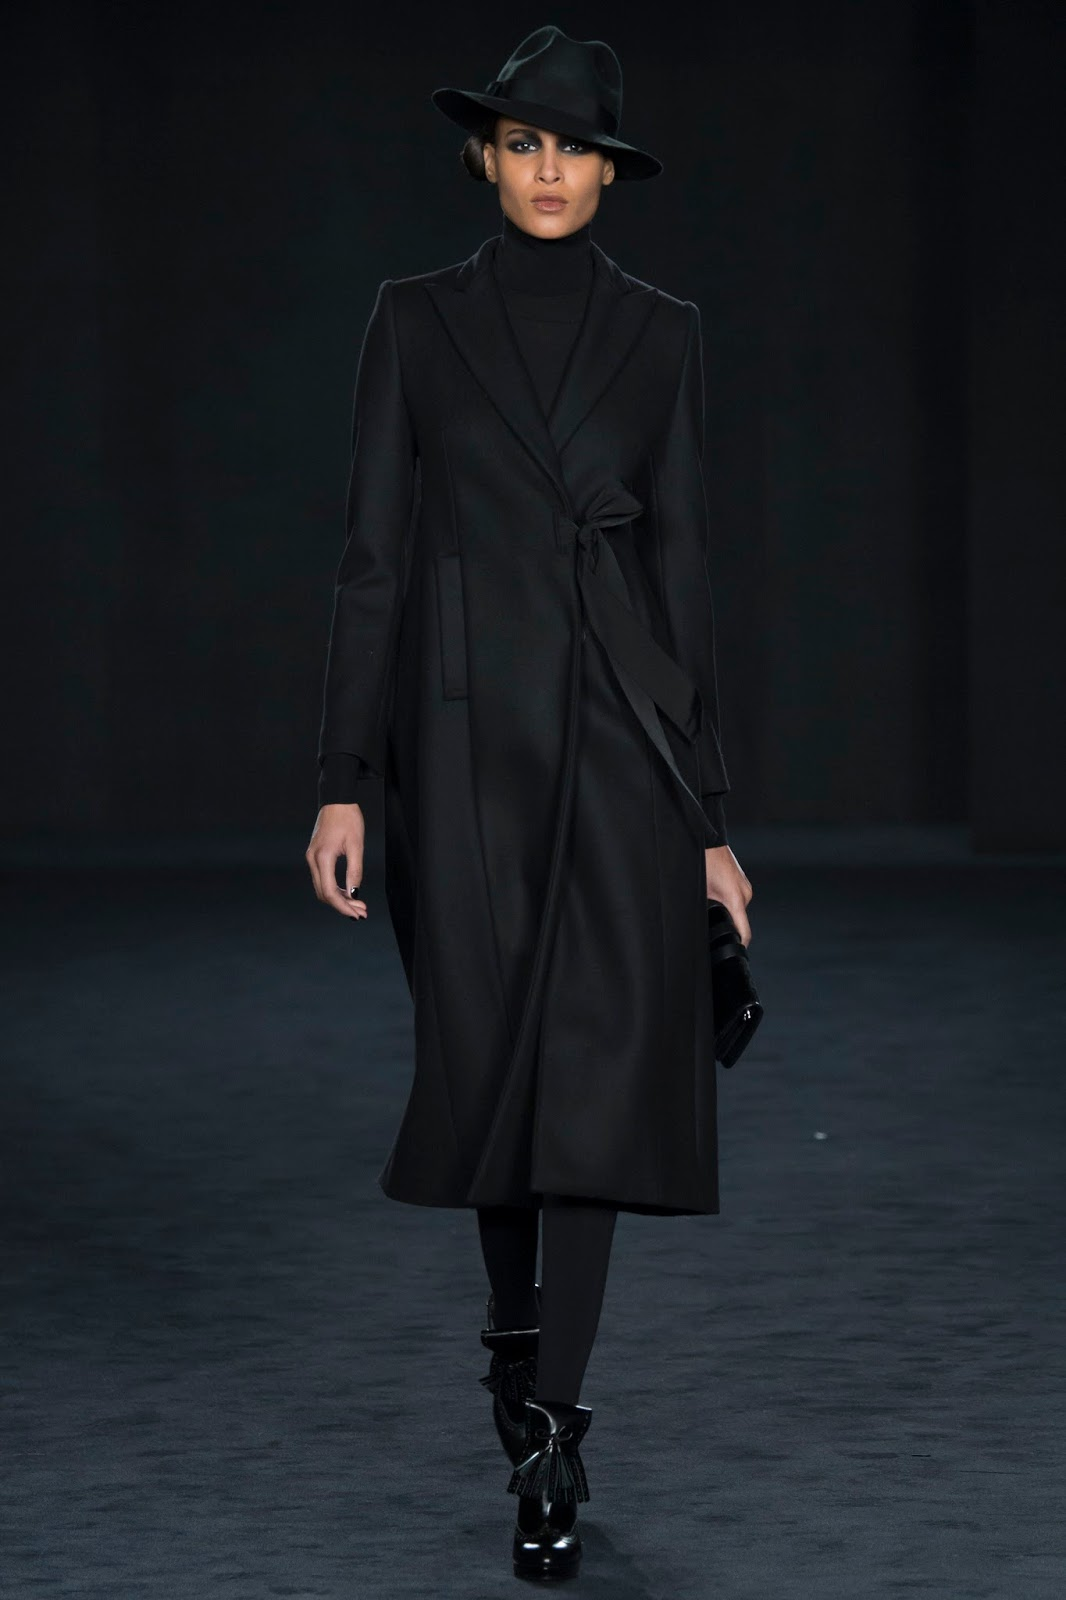 Daks Autumn/Winter 2016 via www.fashionedbylove.co.uk british fashion blog / london fashion week fall/winter 2016